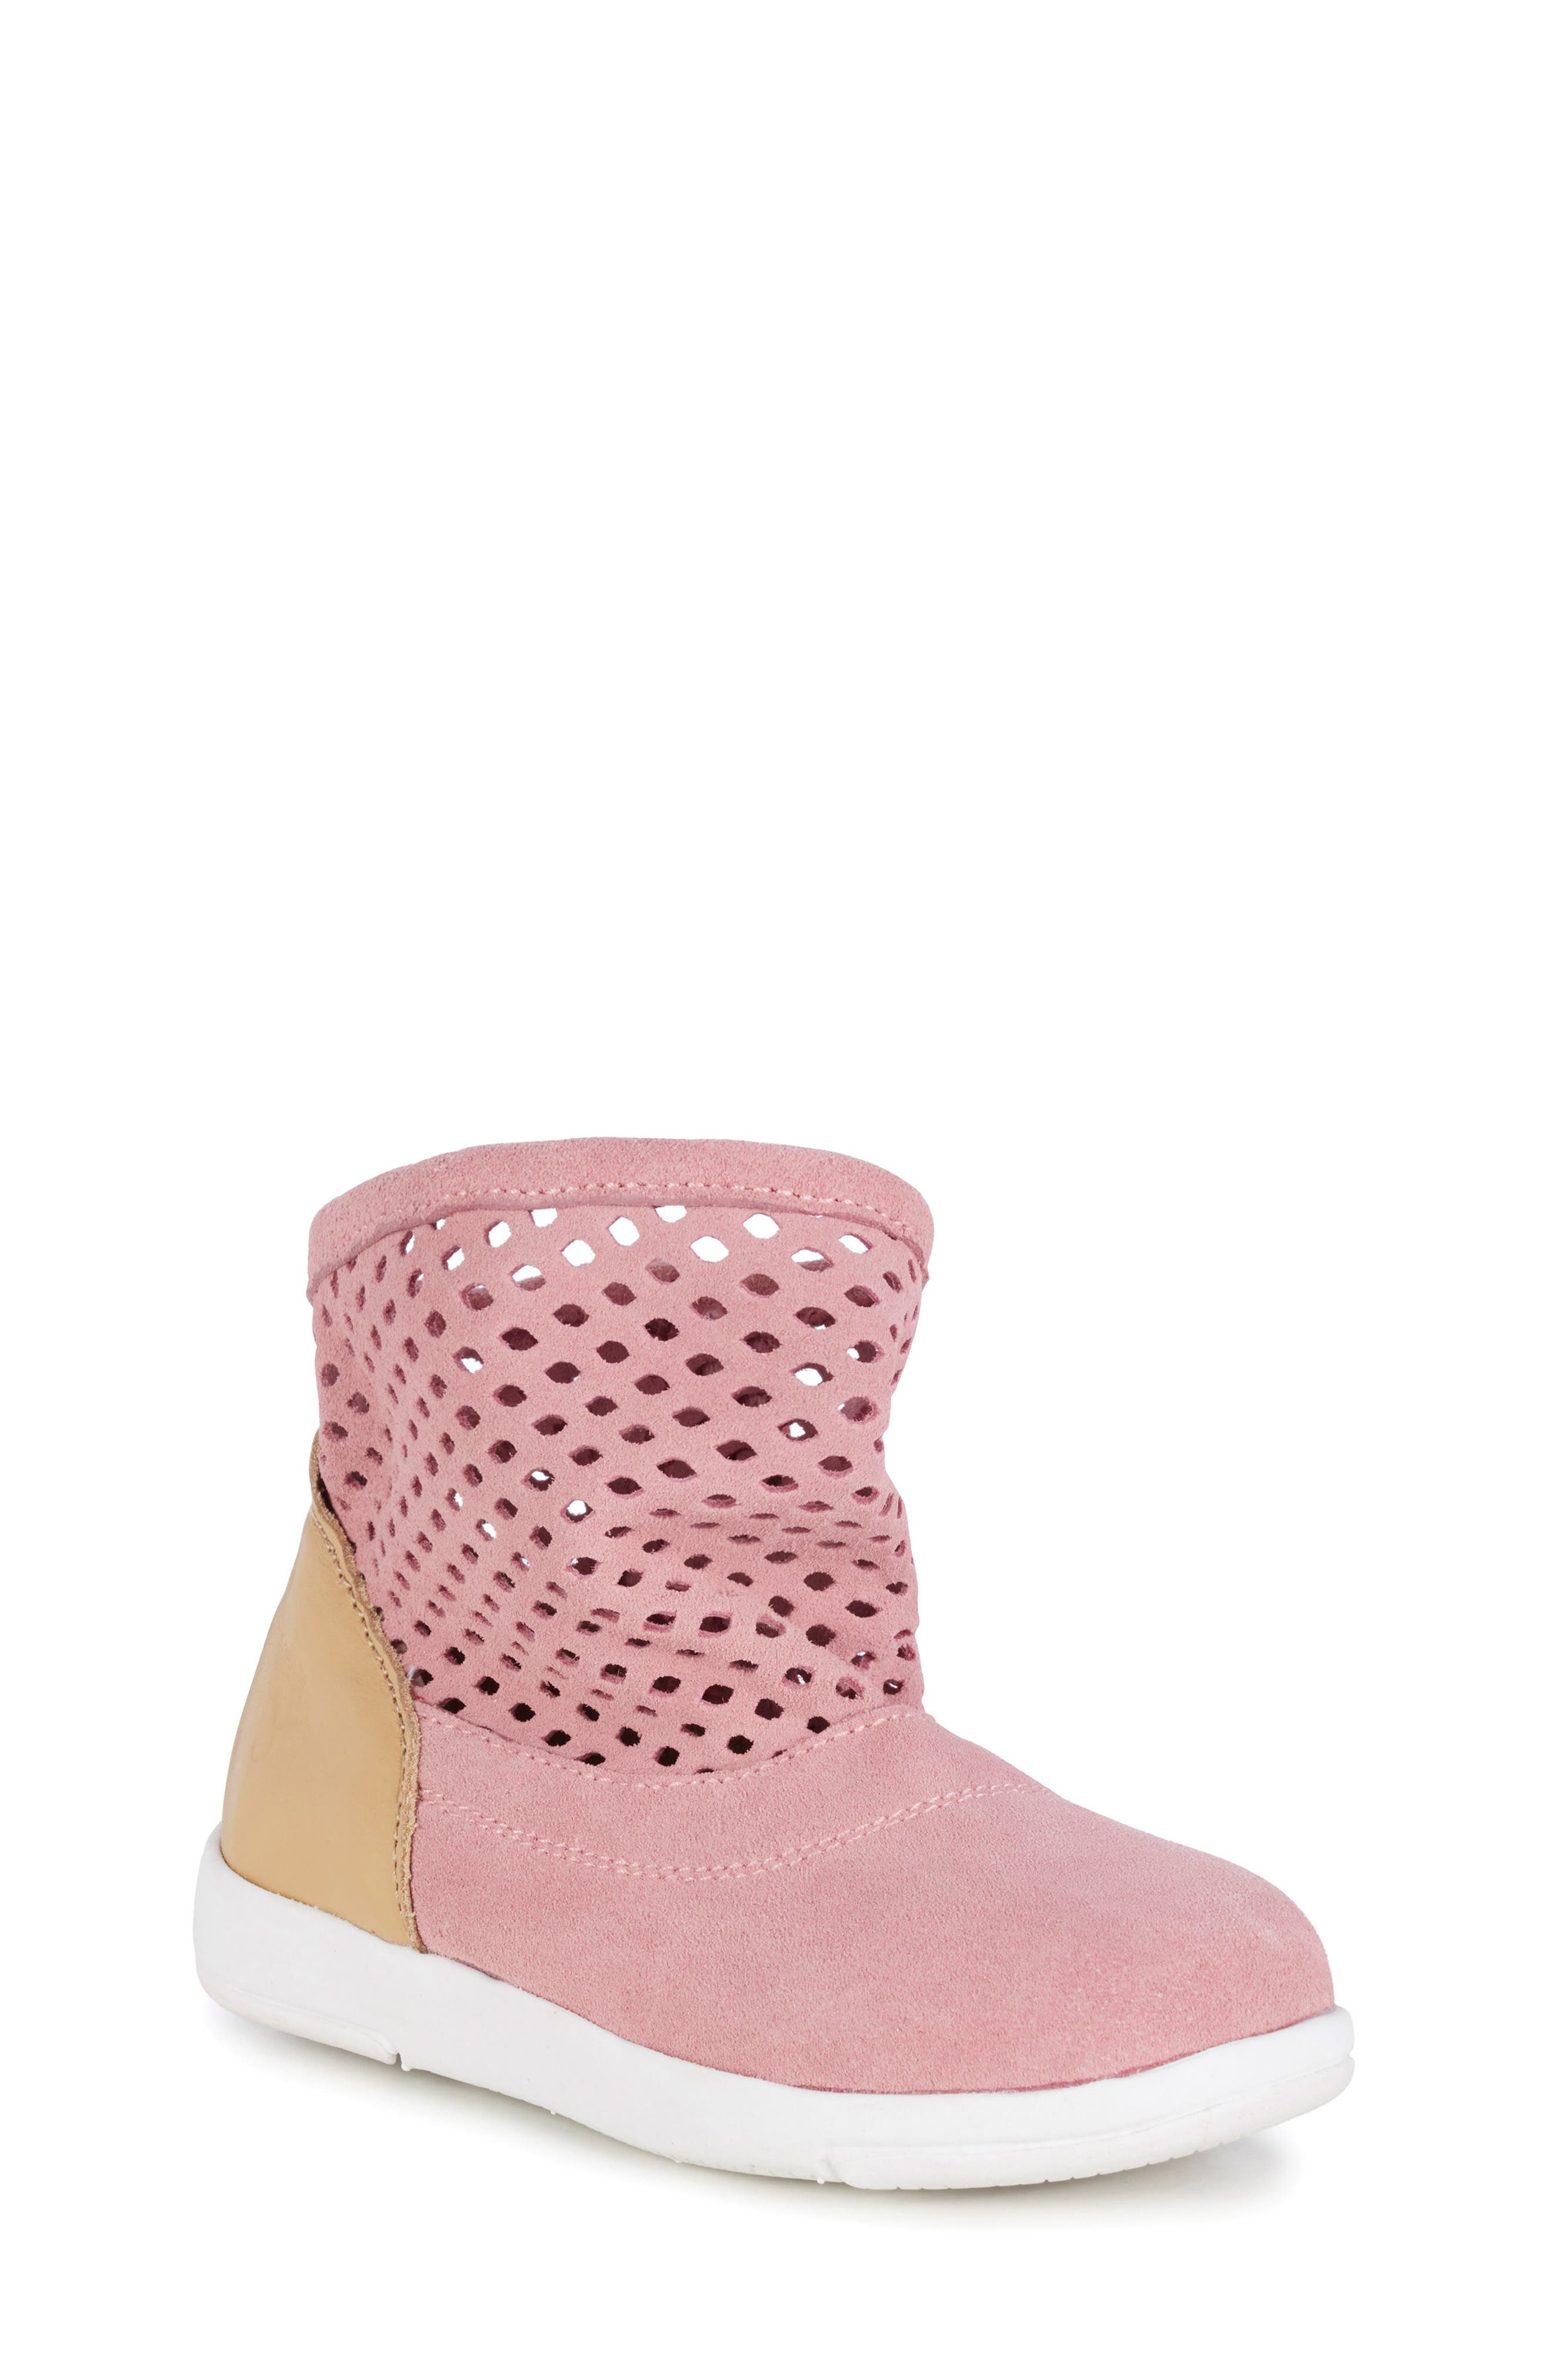 Numeralla Boot,                         Main,                         color, Pale Pink Suede